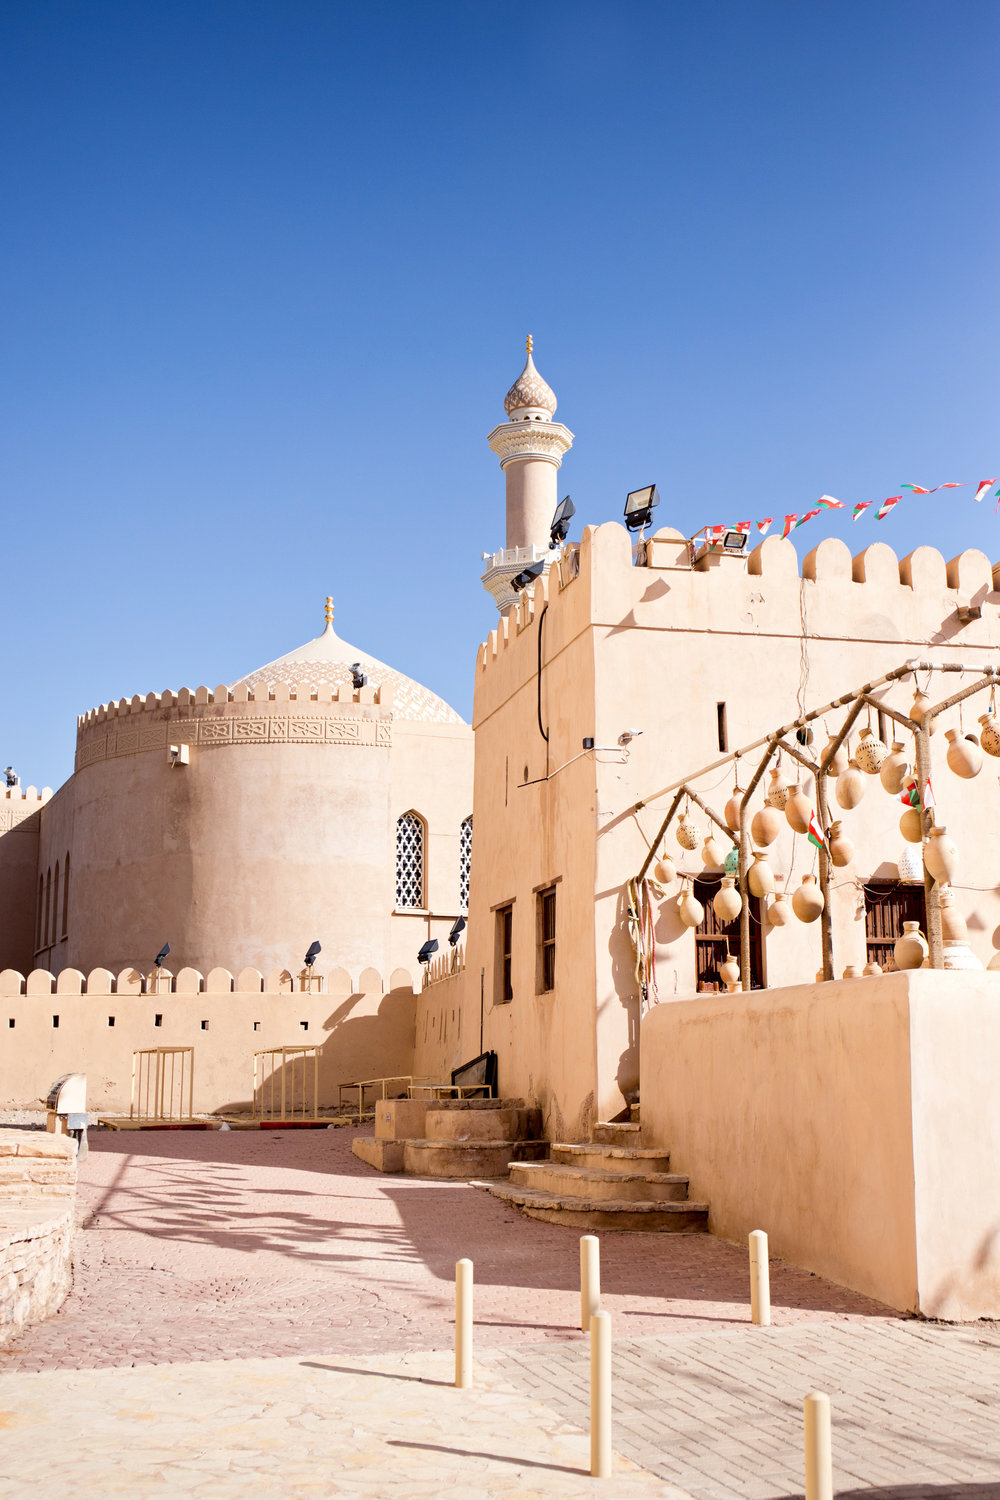 Nizwa Fort in Nizwa (former capital of Oman)